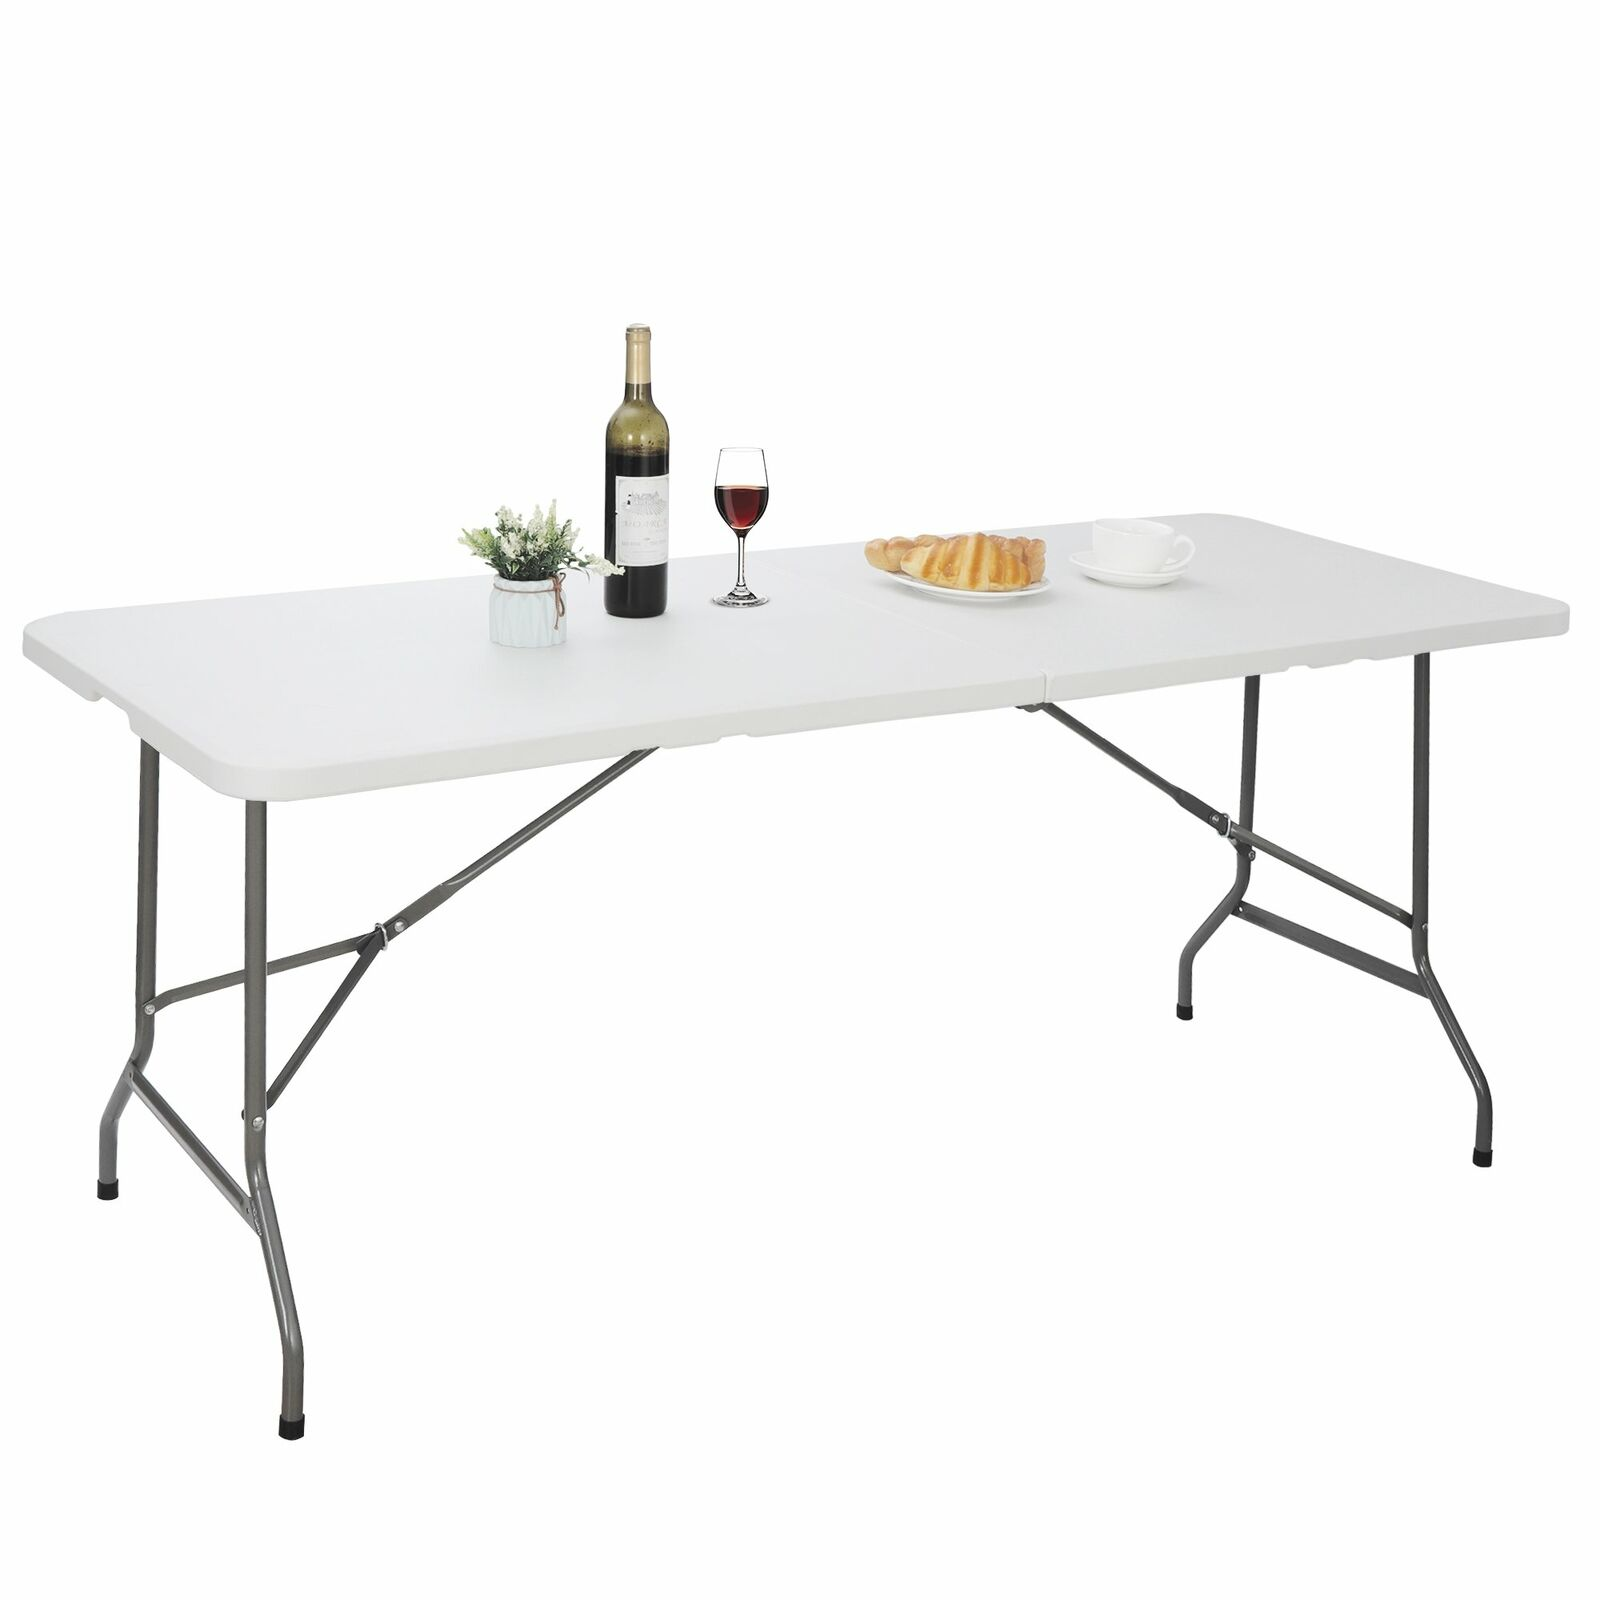 (4ft, 6ft, 8ft) Portable Folding Plastic Table Outdoor Picnic Party Table White Furniture